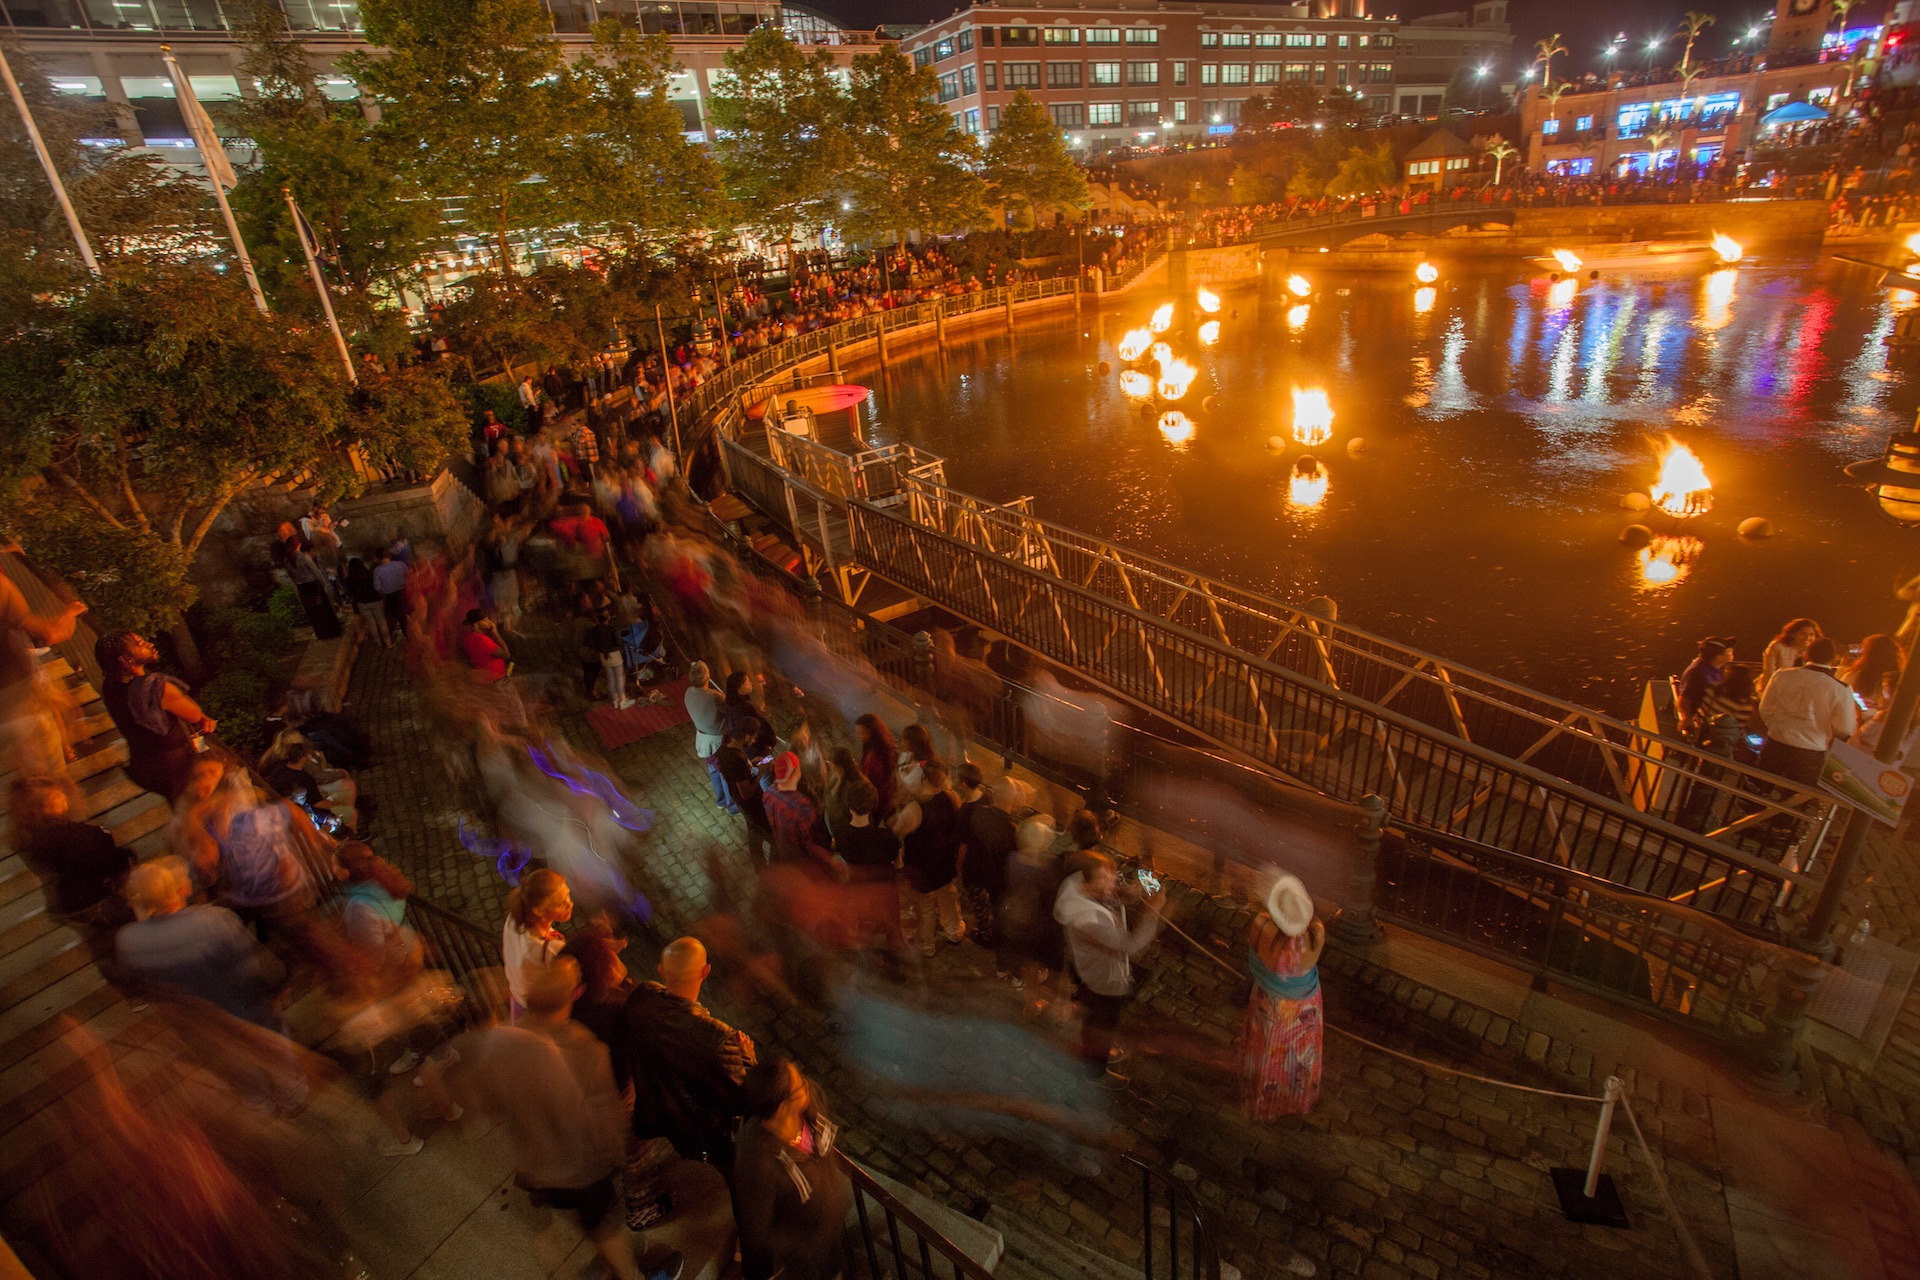 after-the-fires-are-lit-during-the-waterfire-basin-lighting-for-ri-day-of-portugal_27925820037_o